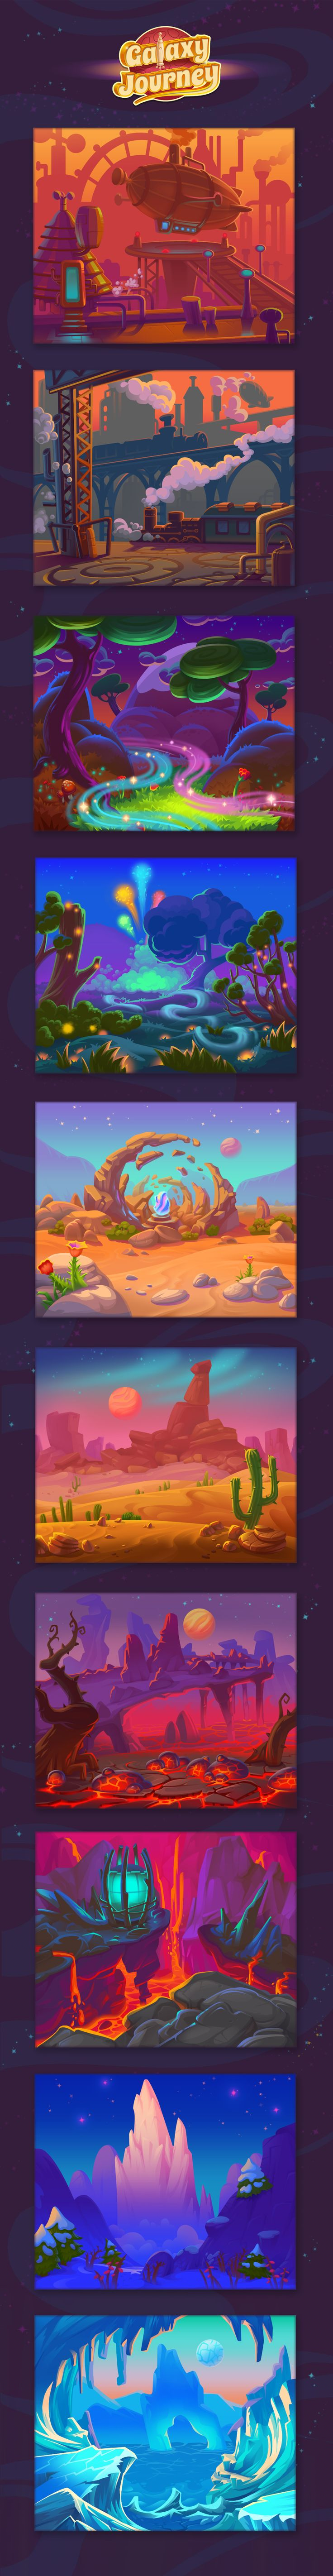 Game Background. Landscapes art for different planets in game.